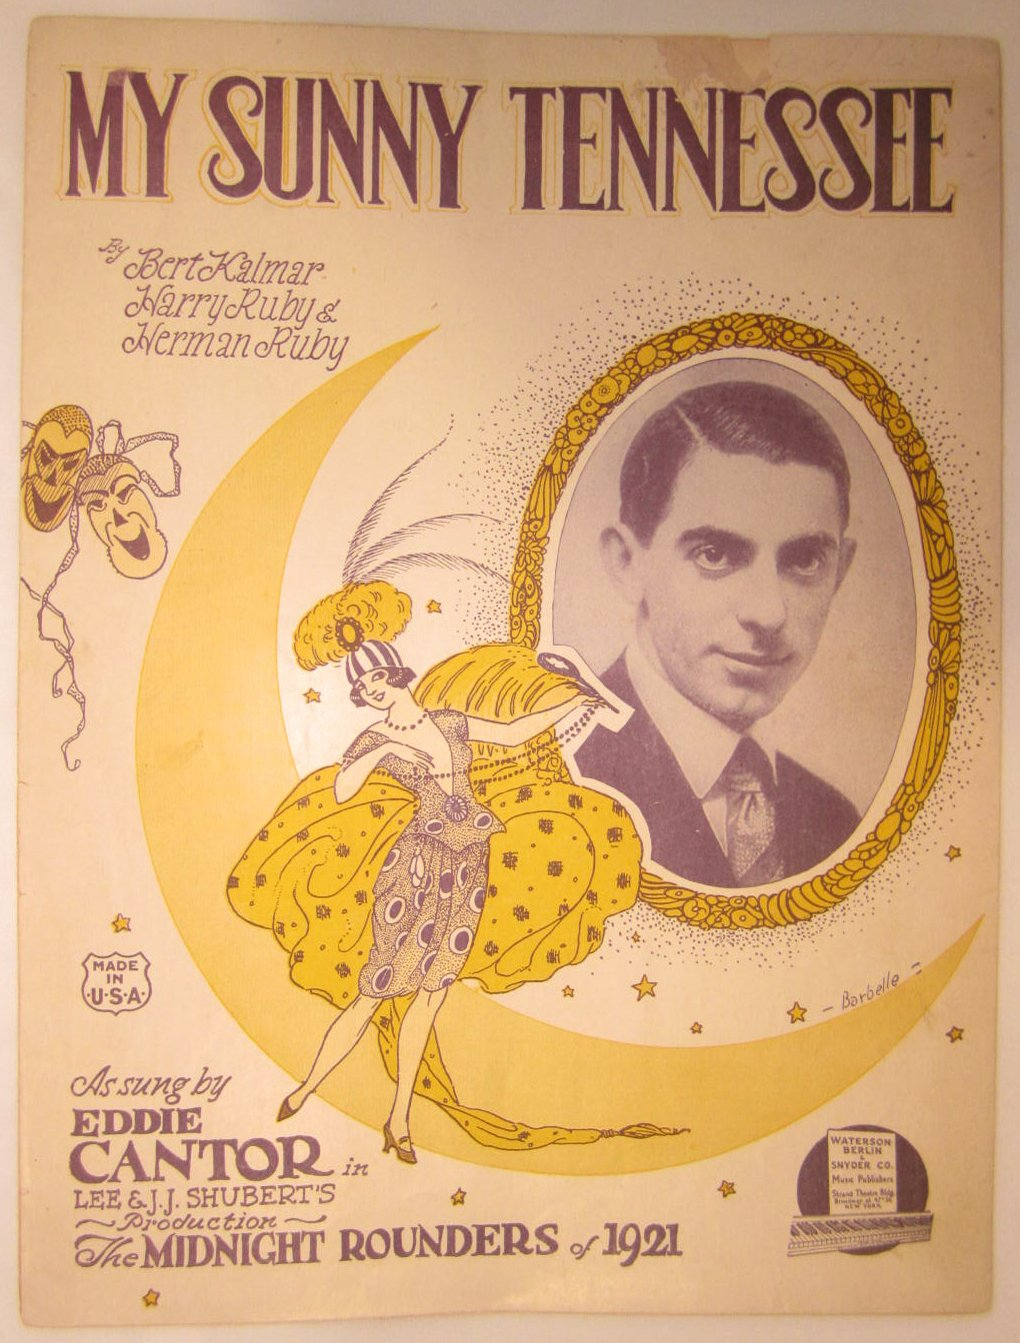 My Sunny Tennessee lyrics, from the musical Three Little Words starring Fred Astaire and Red Skelton